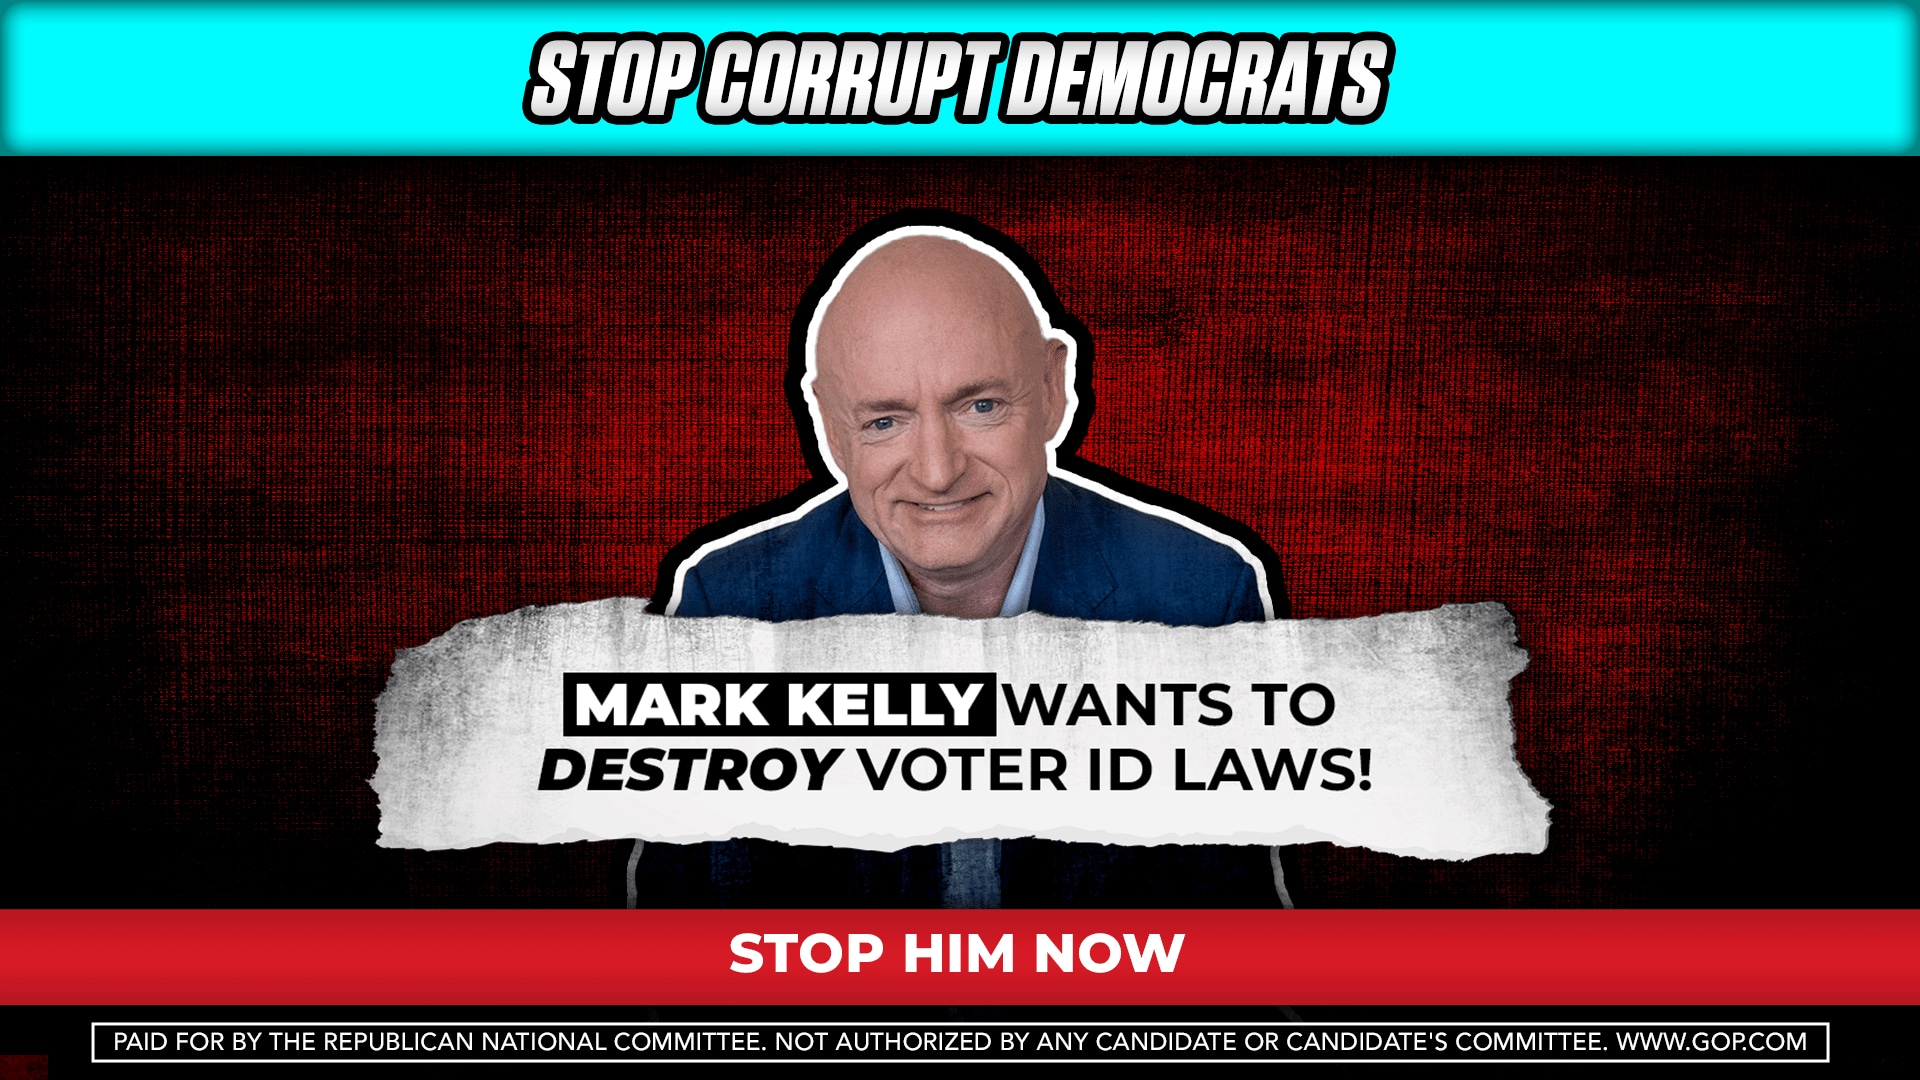 Mark Kelly presented as the face of H.R. 1 in a recently released GOP advertisement.